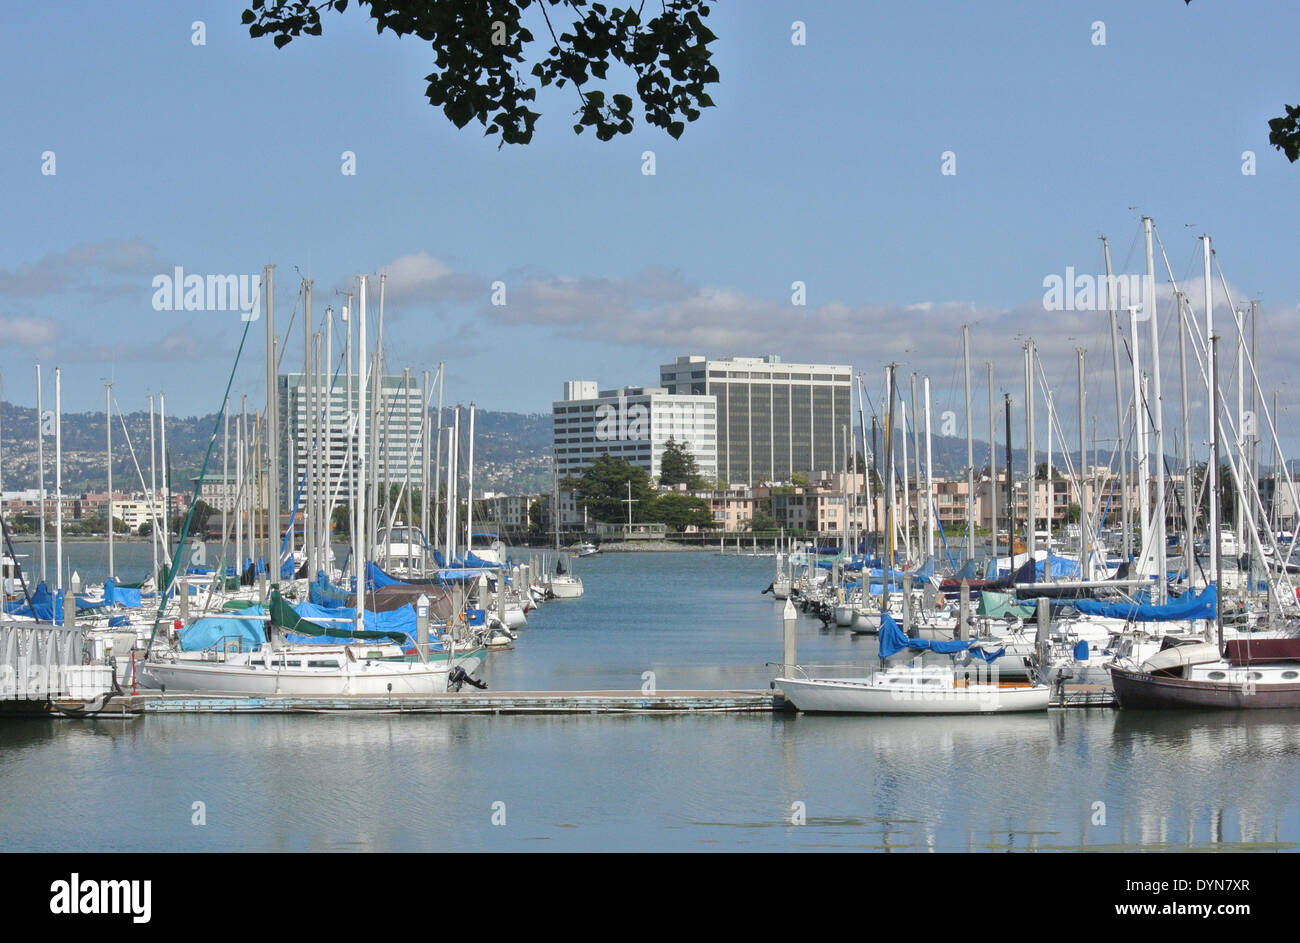 view of Emeryville marina and berkeley hills - Stock Image